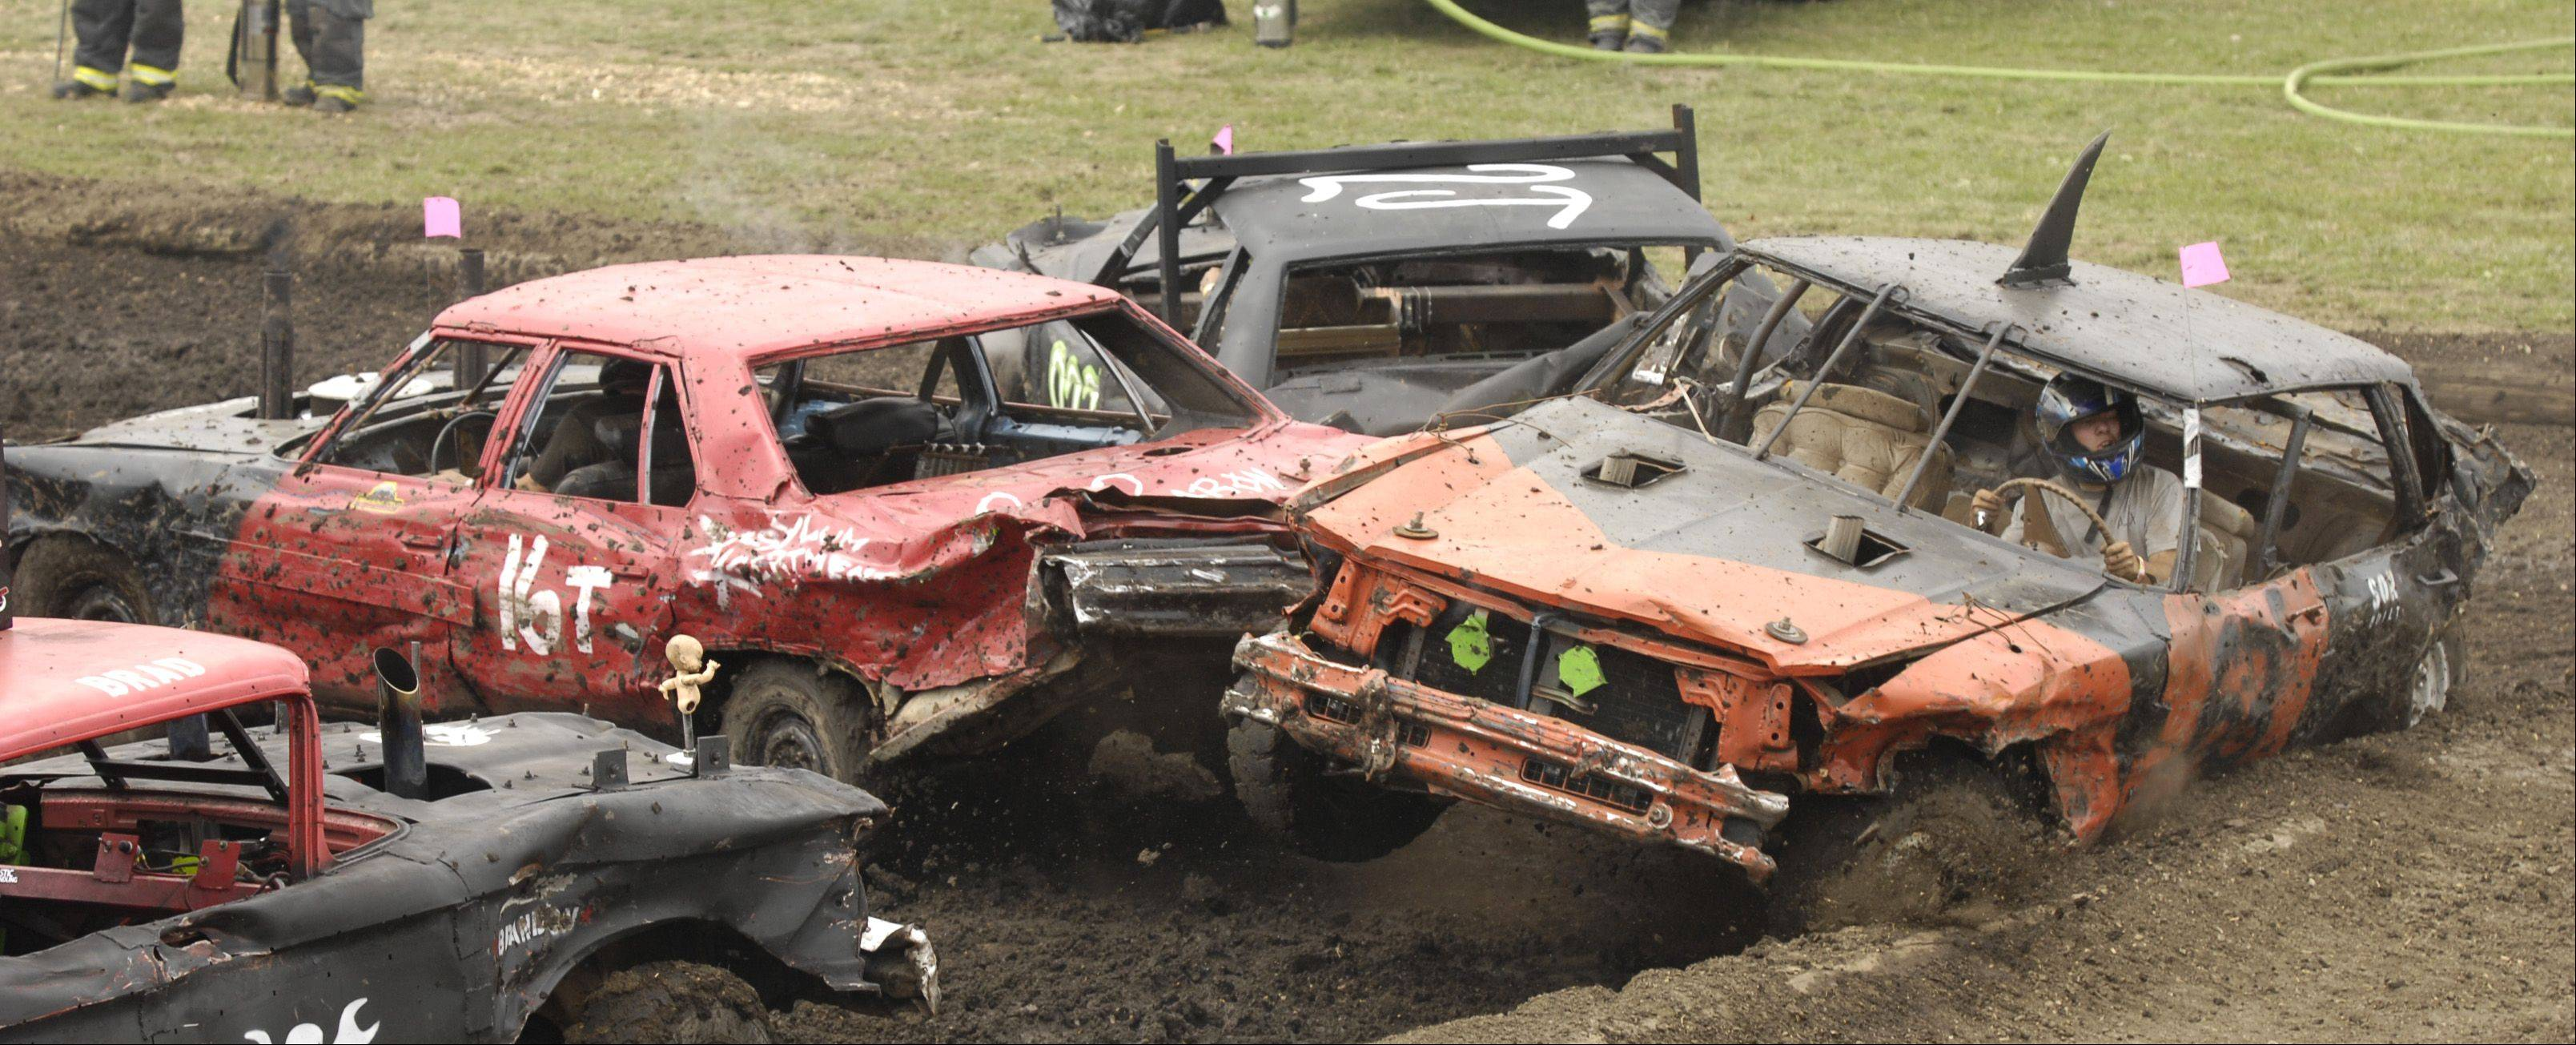 Rob Moore of Villa Park in 16T smashes into one of his competitors during the demolition derby Sunday at the DuPage County Fair.